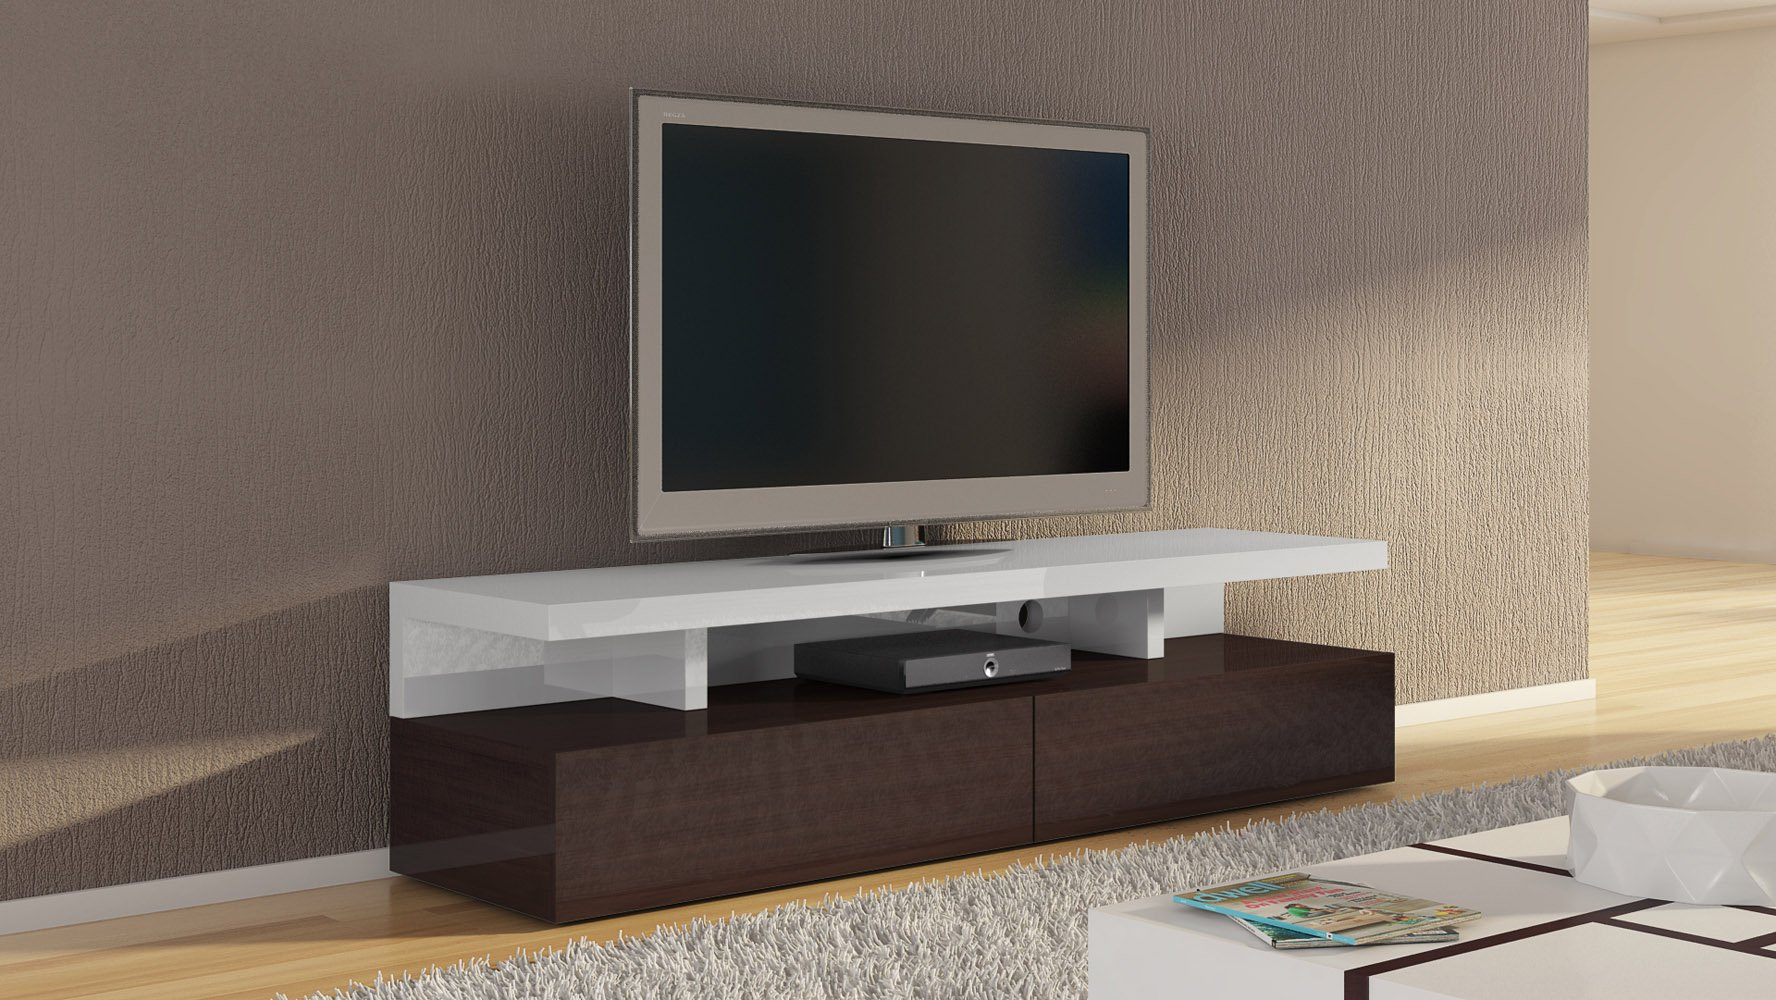 Mcintosh 71 Inch Tv Stand In White High Gloss And Ebony With Regard To Tv Stands With 2 Open Shelves 2 Drawers High Gloss Tv Unis (View 3 of 15)